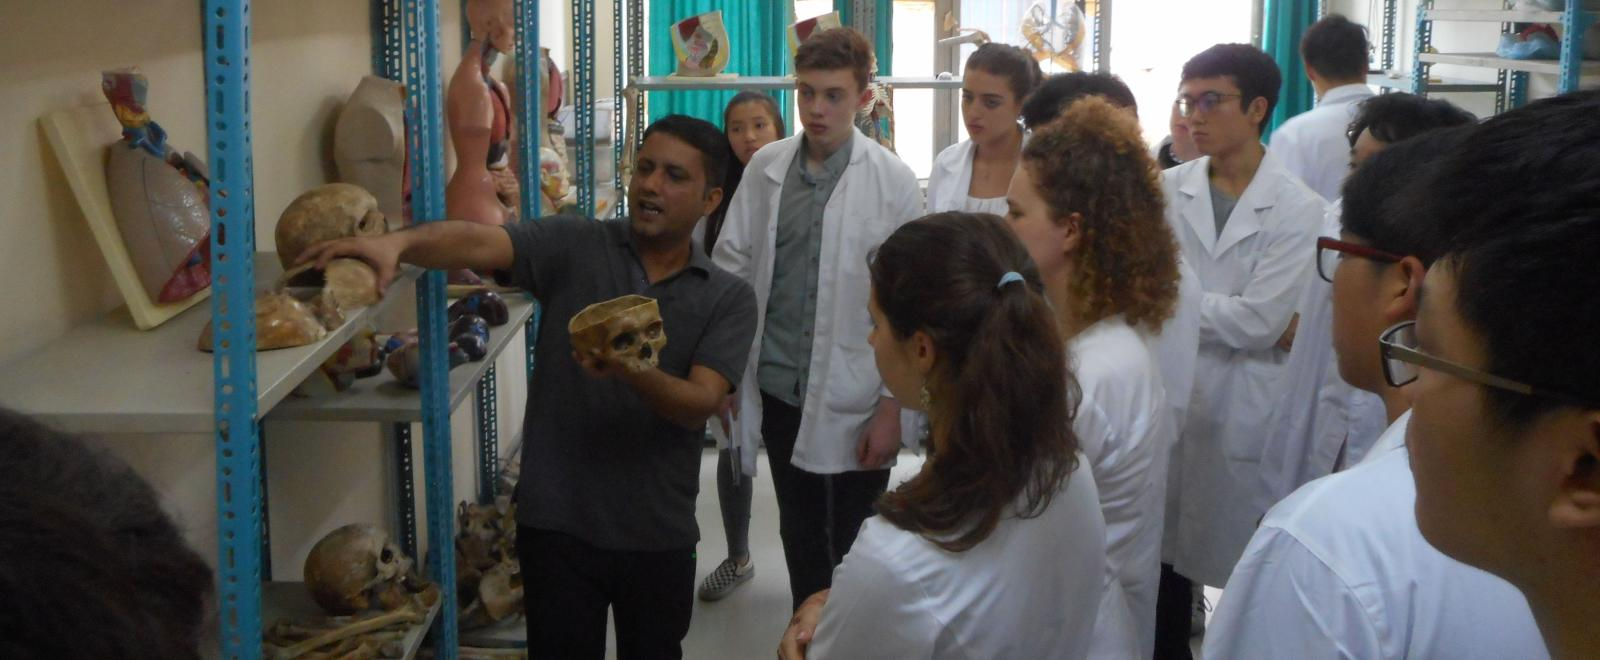 Medical interns listen to a doctor as he teaches them anatomy during their team trip in Nepal